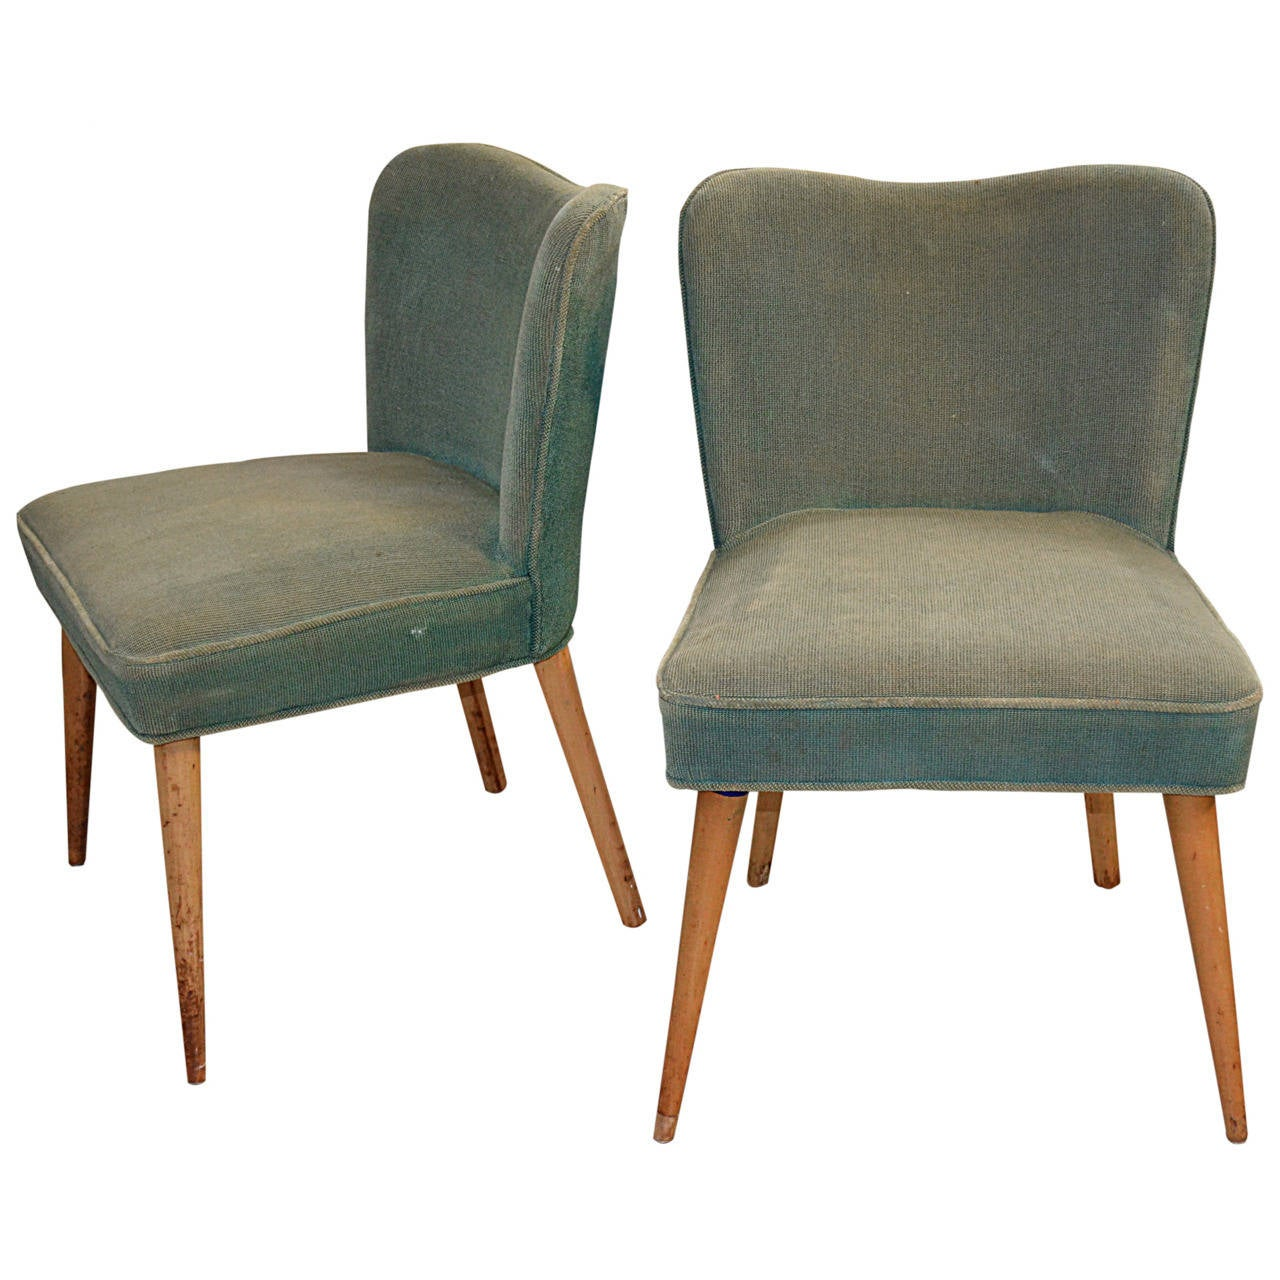 Pair of Modernist Side Chairs